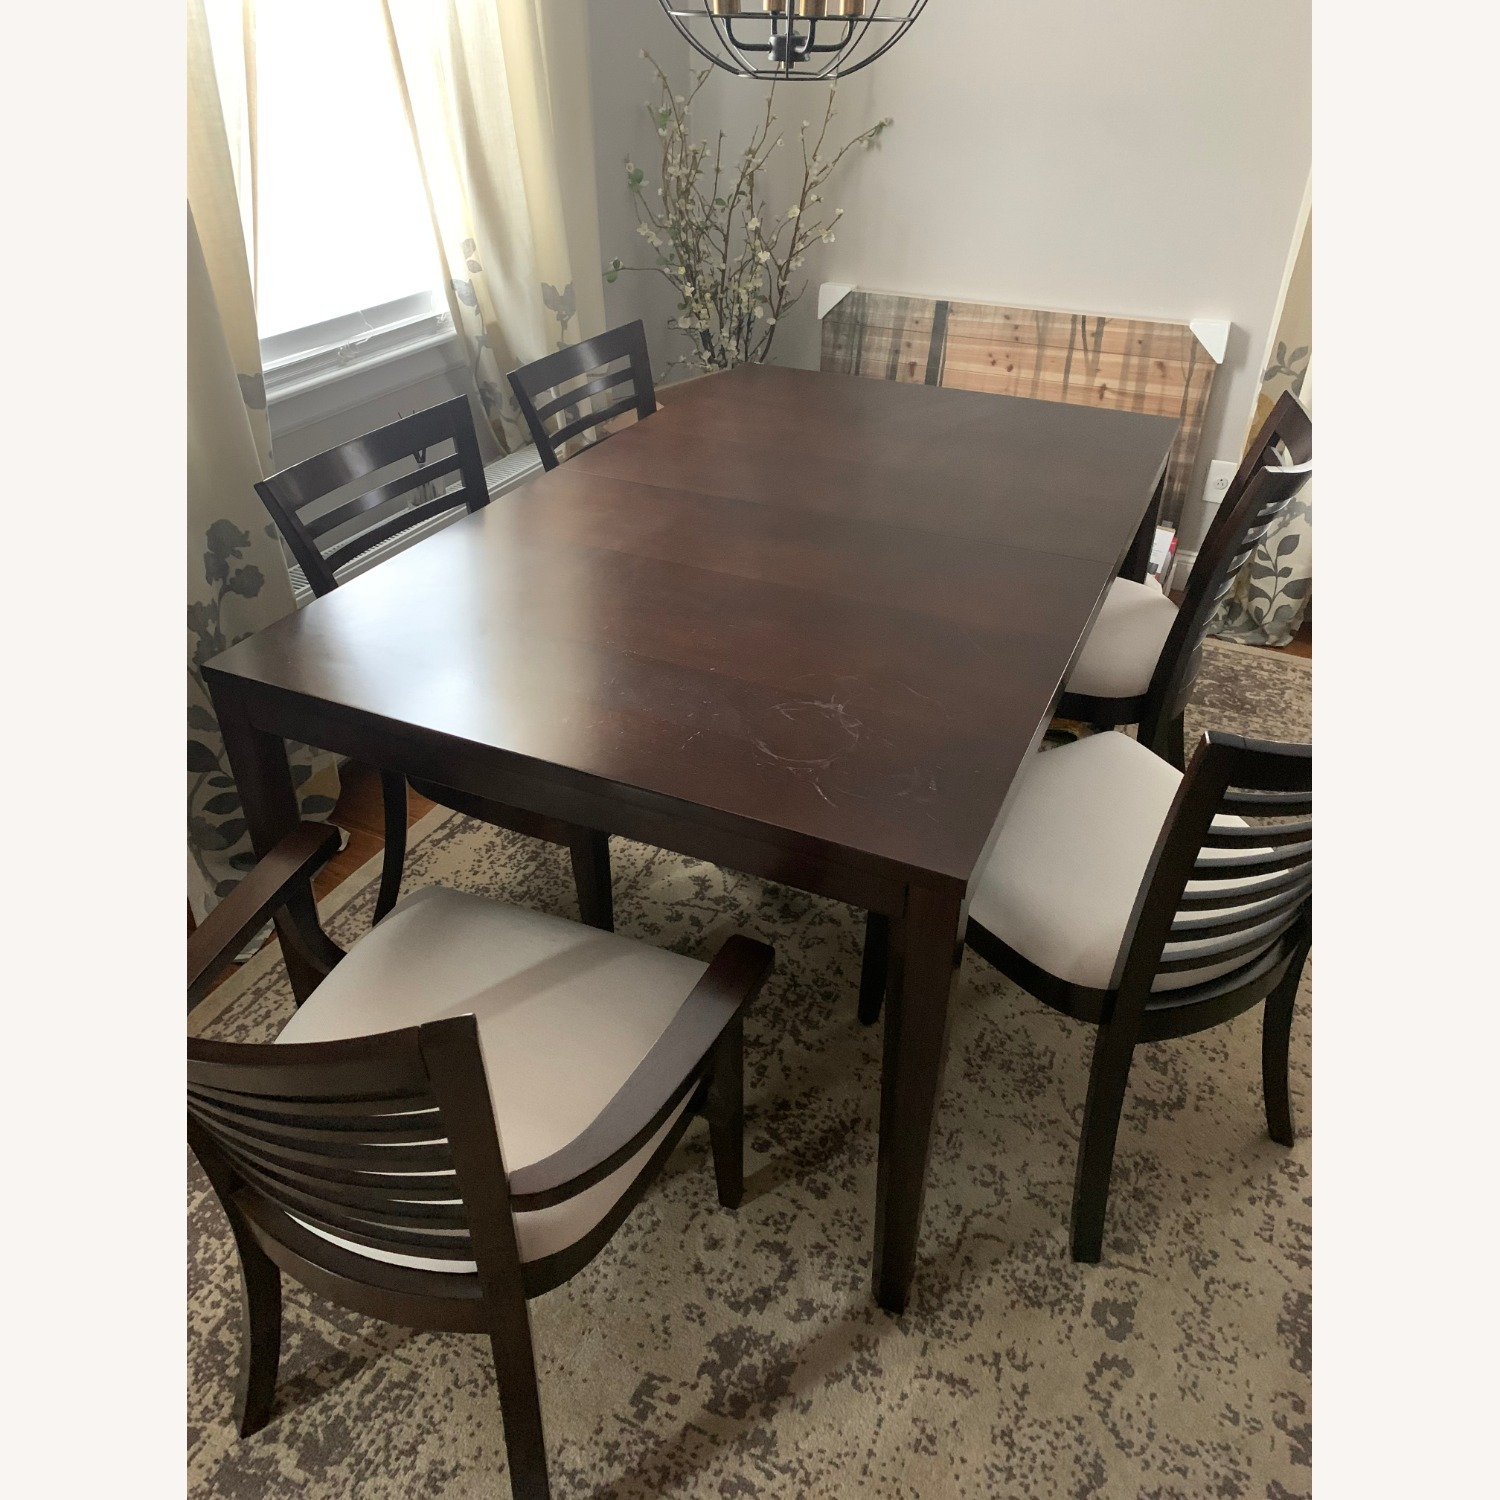 5 Peice Dining Set Plus an Arm Chair - image-3